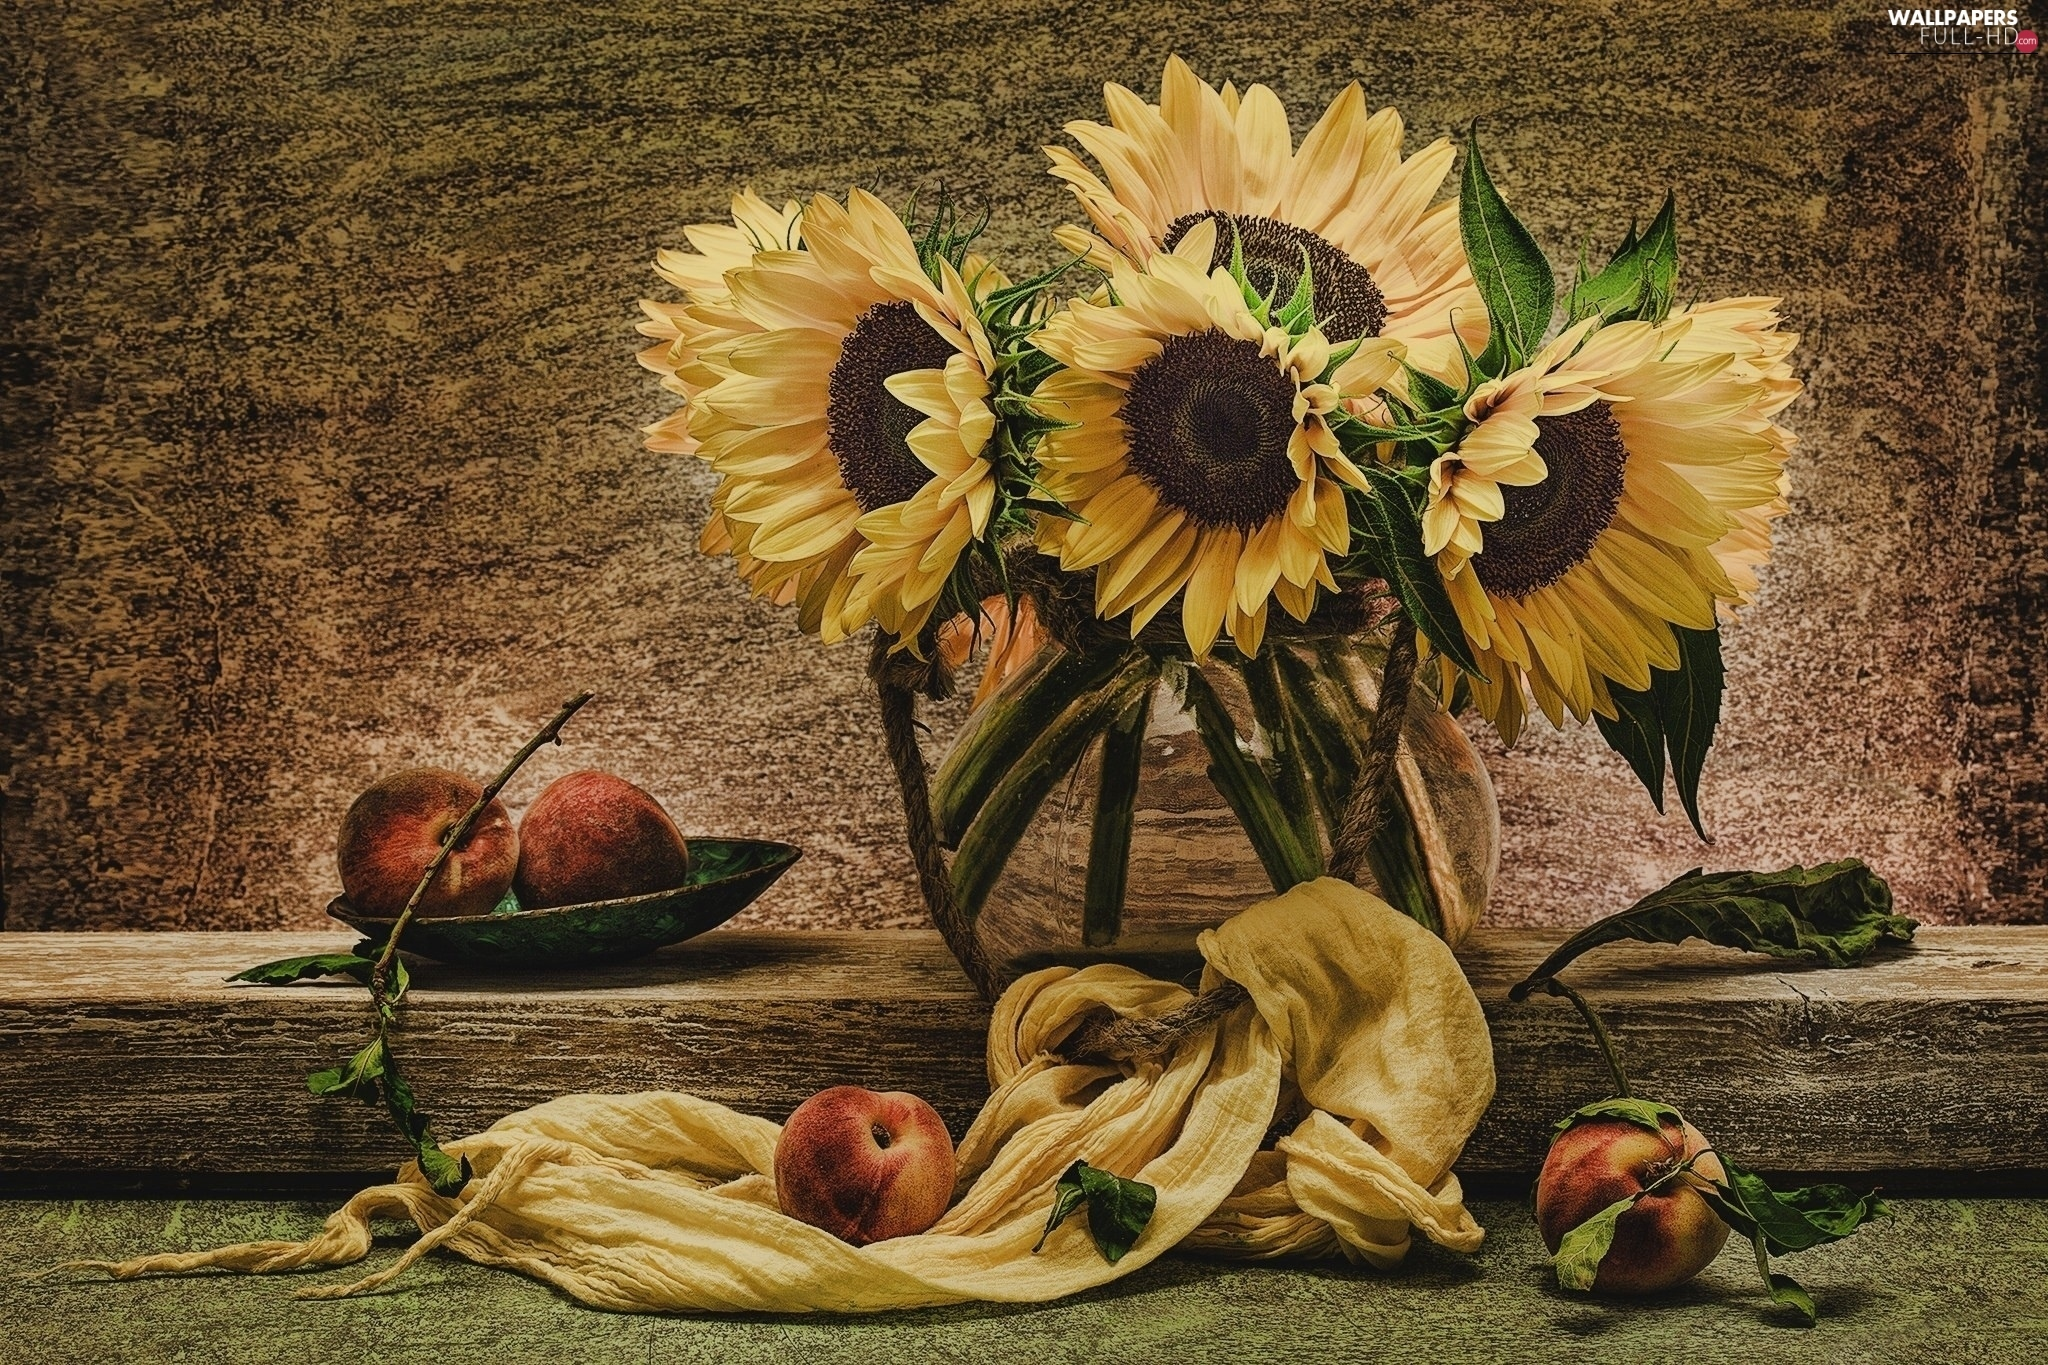 composition, sunflowers, Flowers